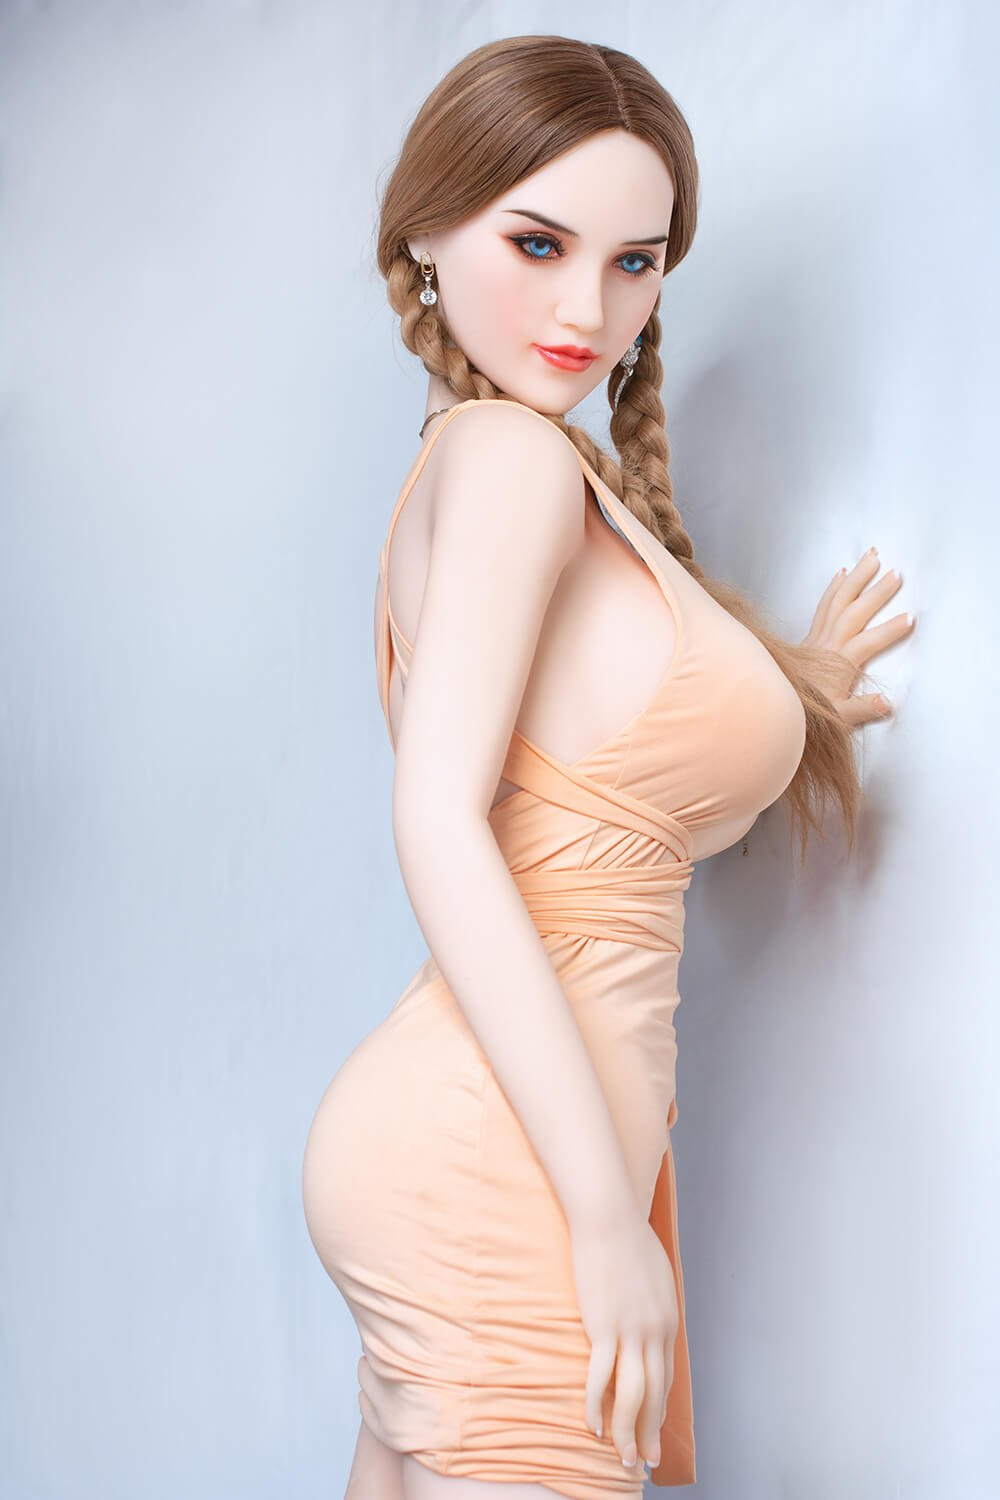 168CM Sexy Doll - Constance